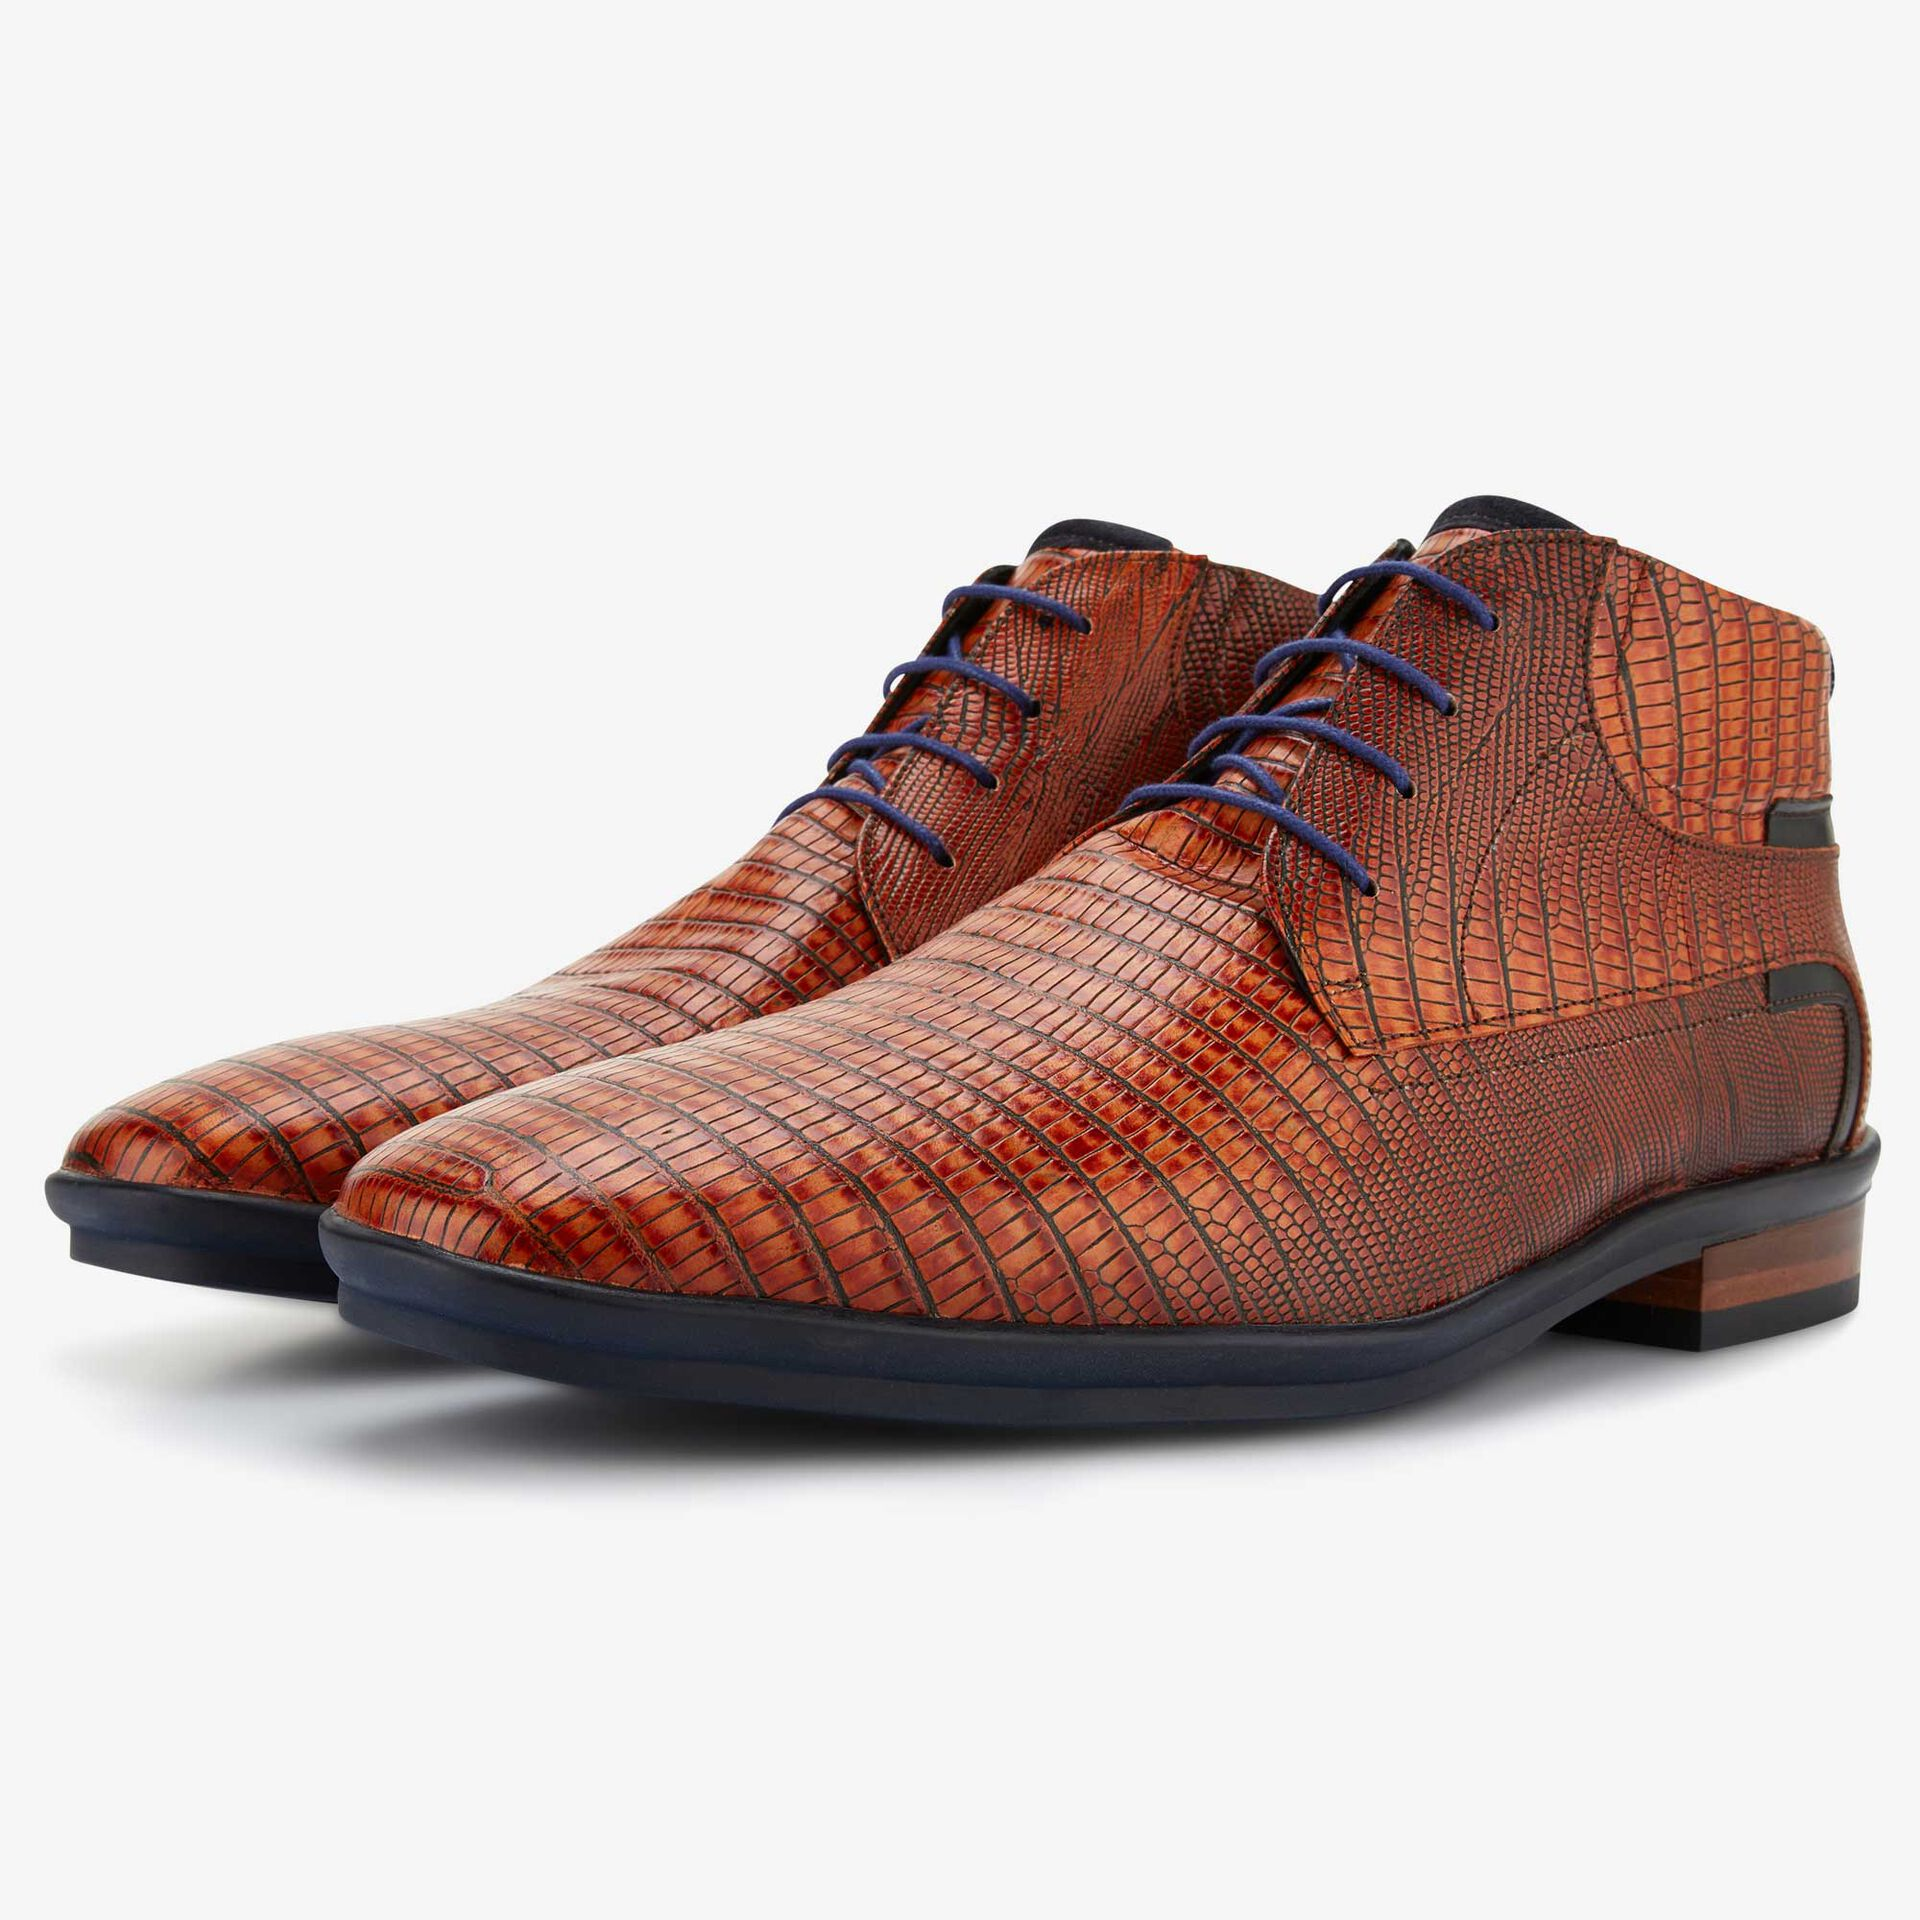 Floris van Bommel cognac lizardprint veterboot